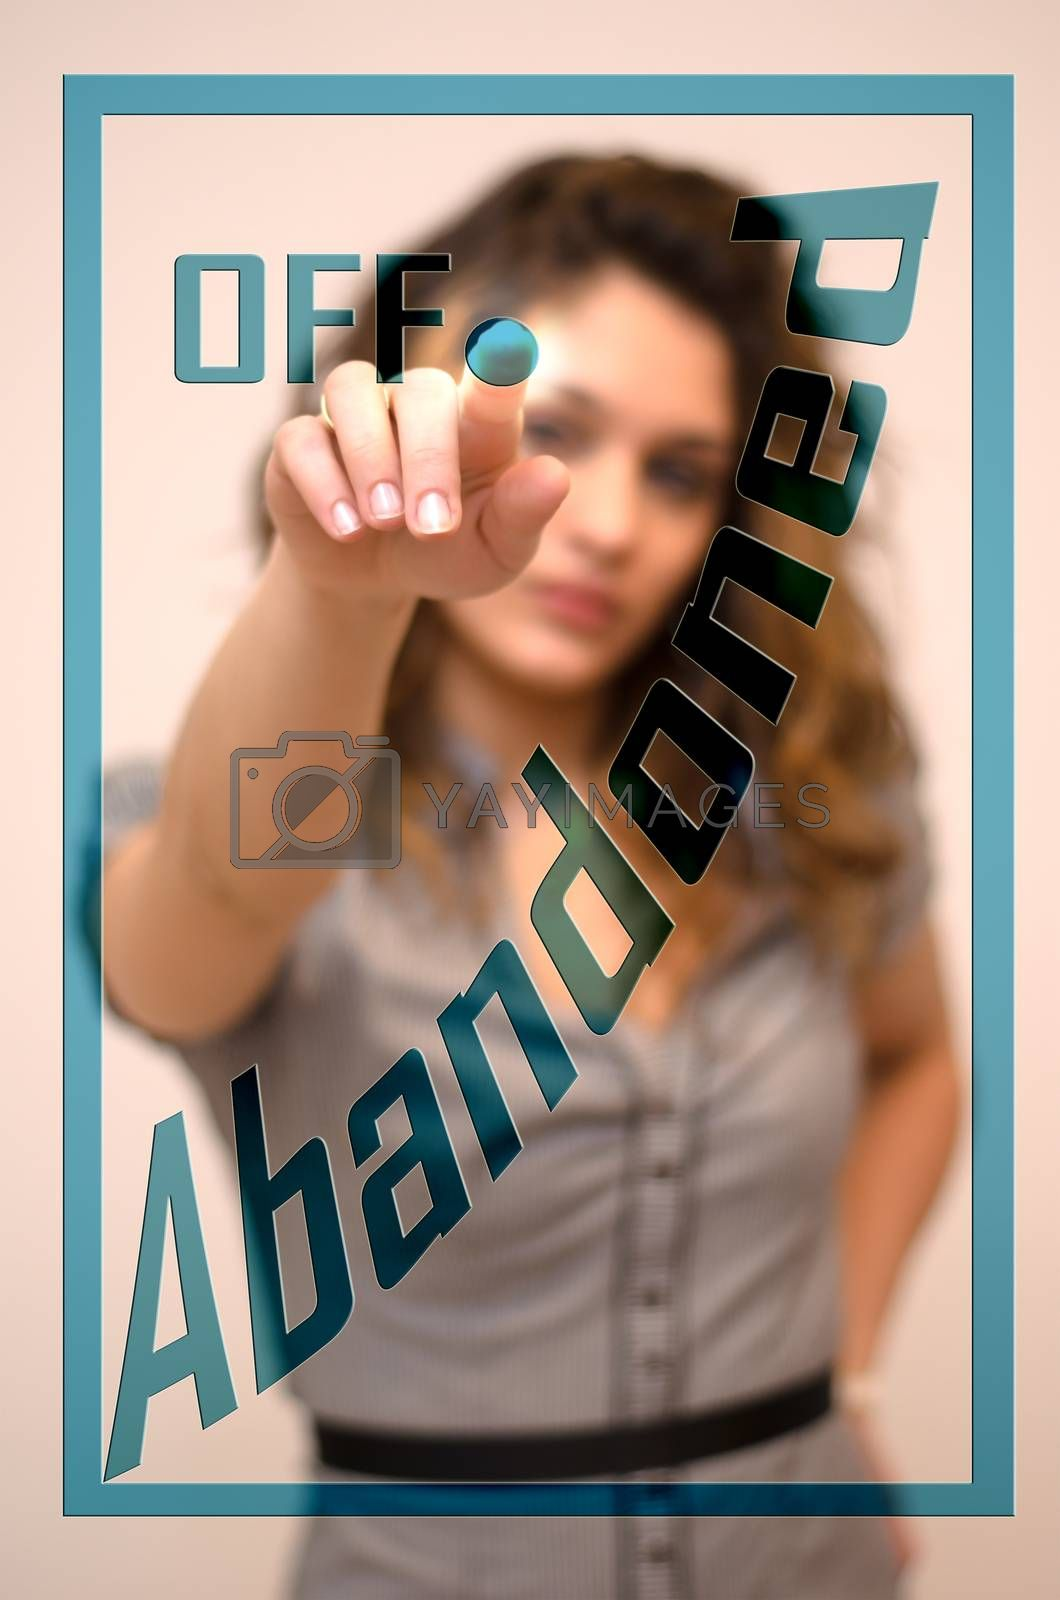 young woman turning offAbandoned on hologram screen